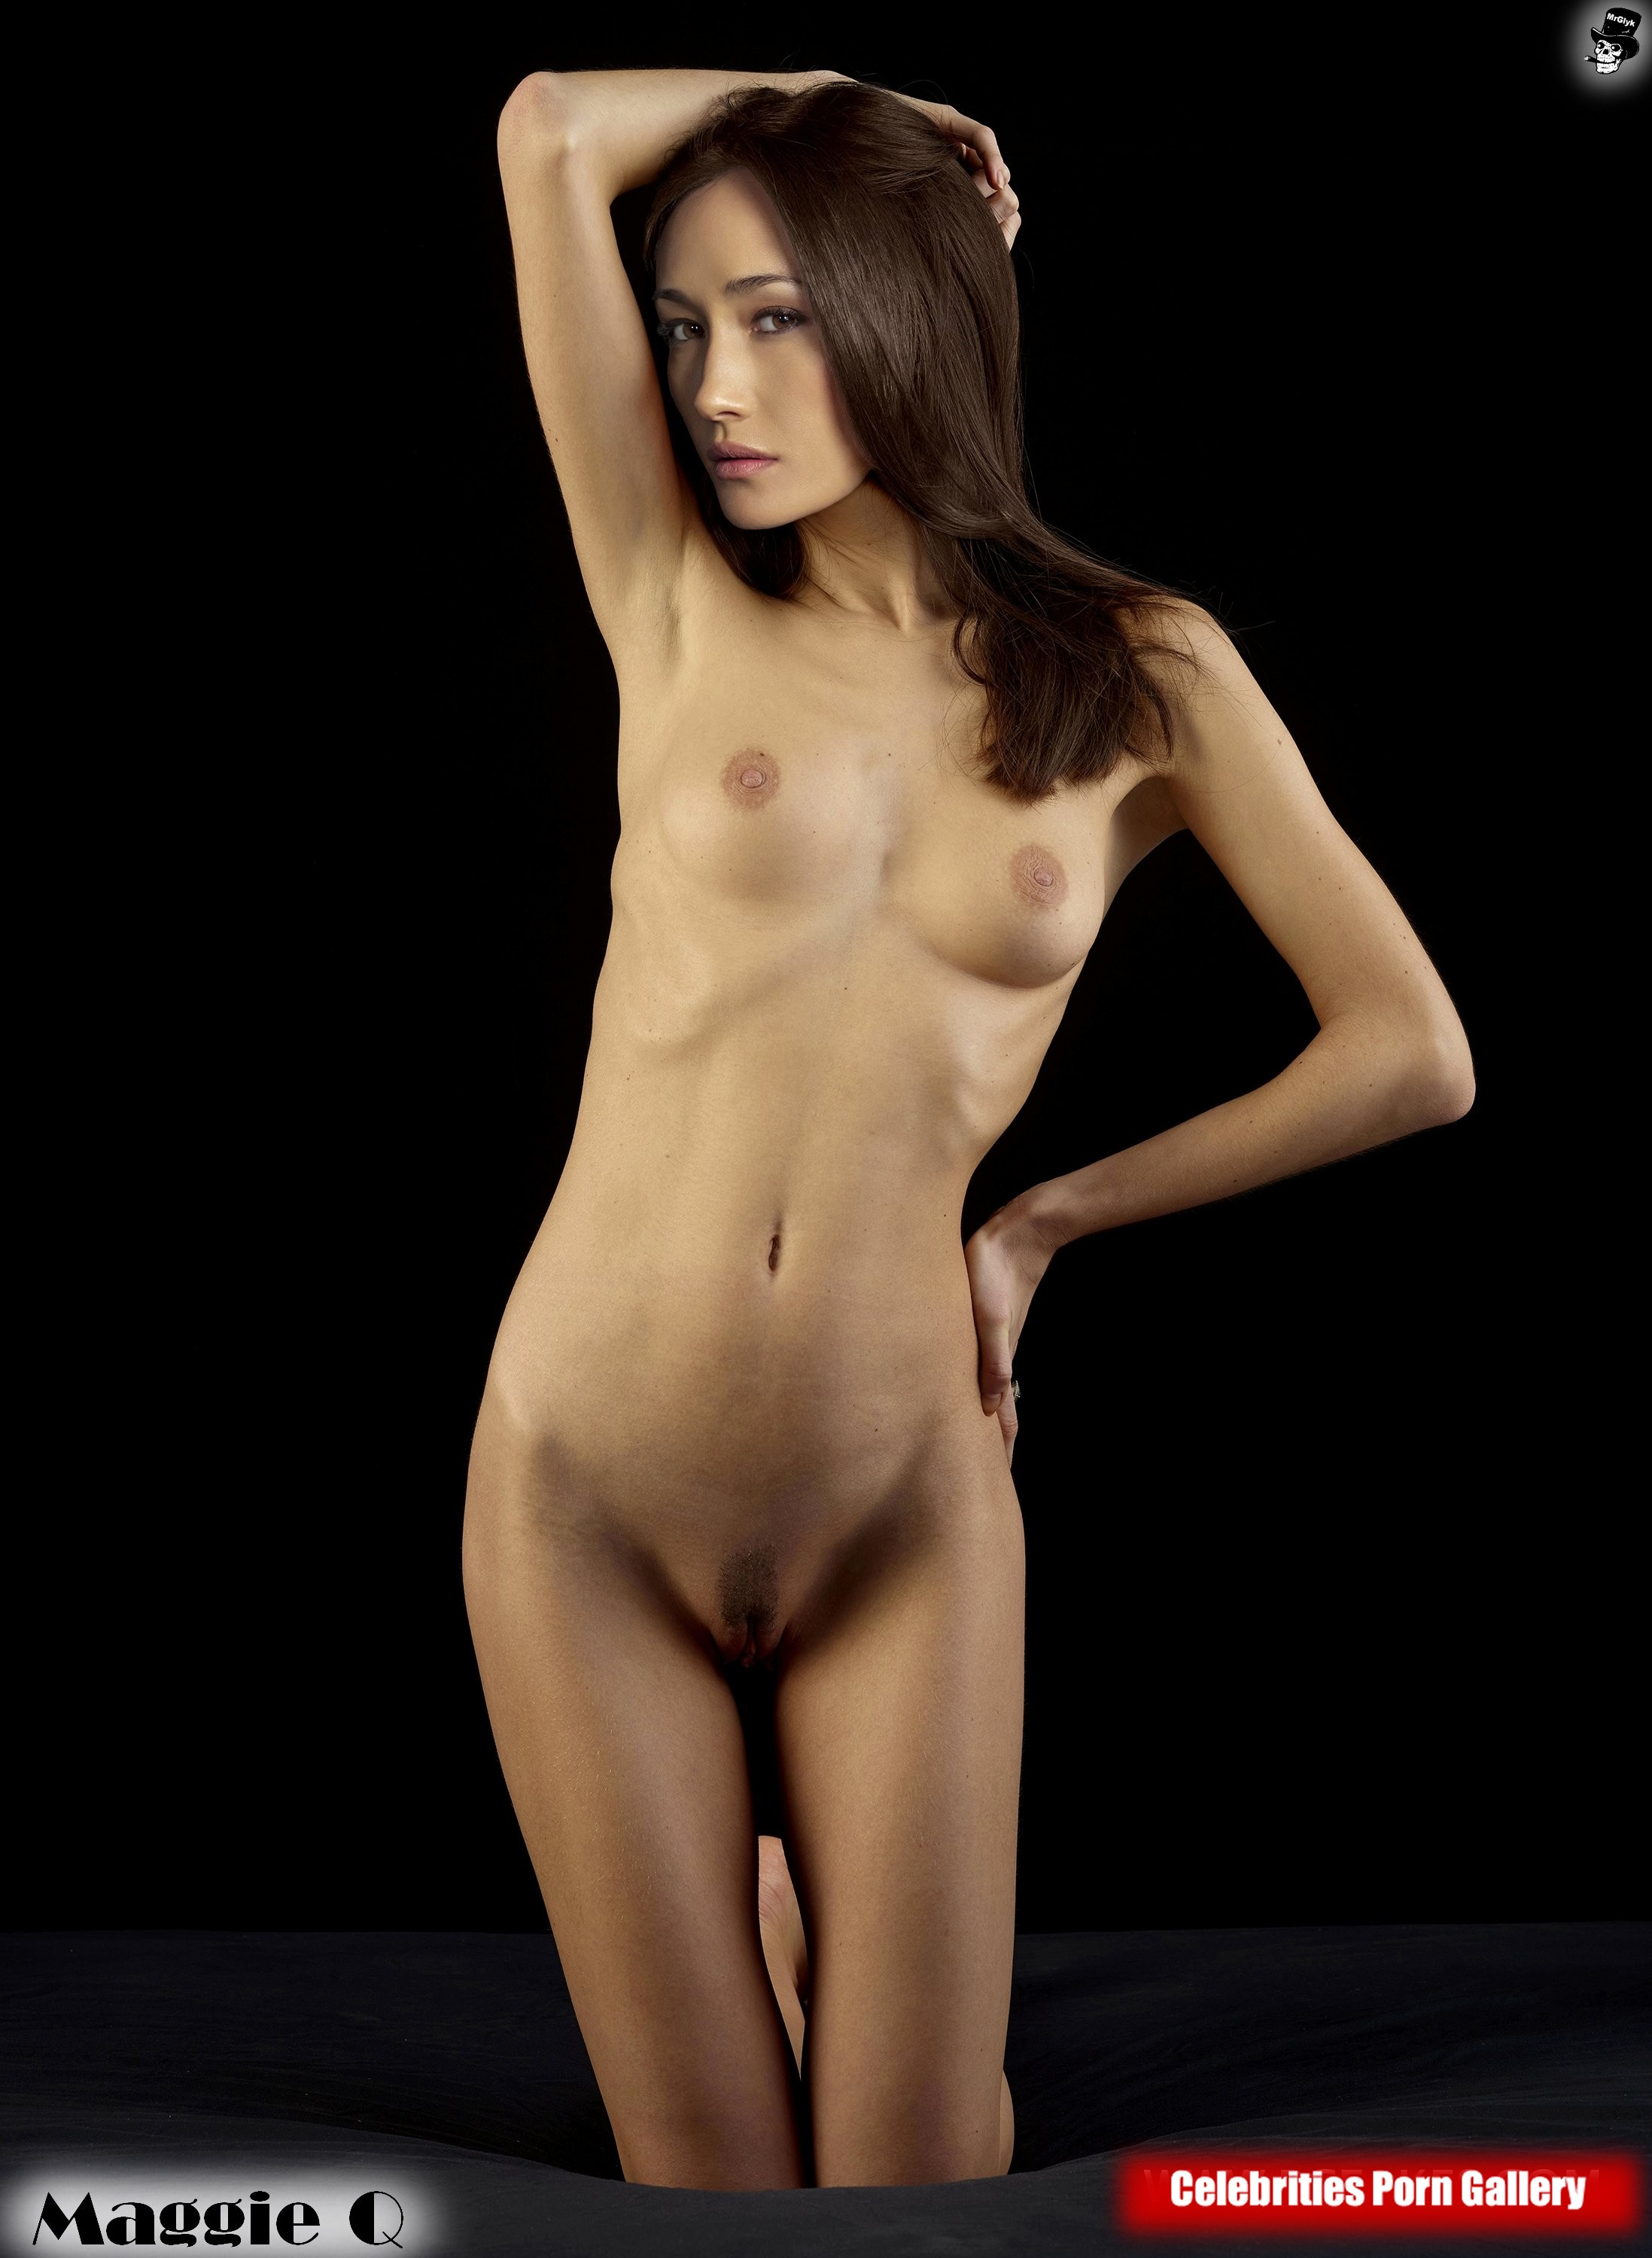 Maggie siff nude photos